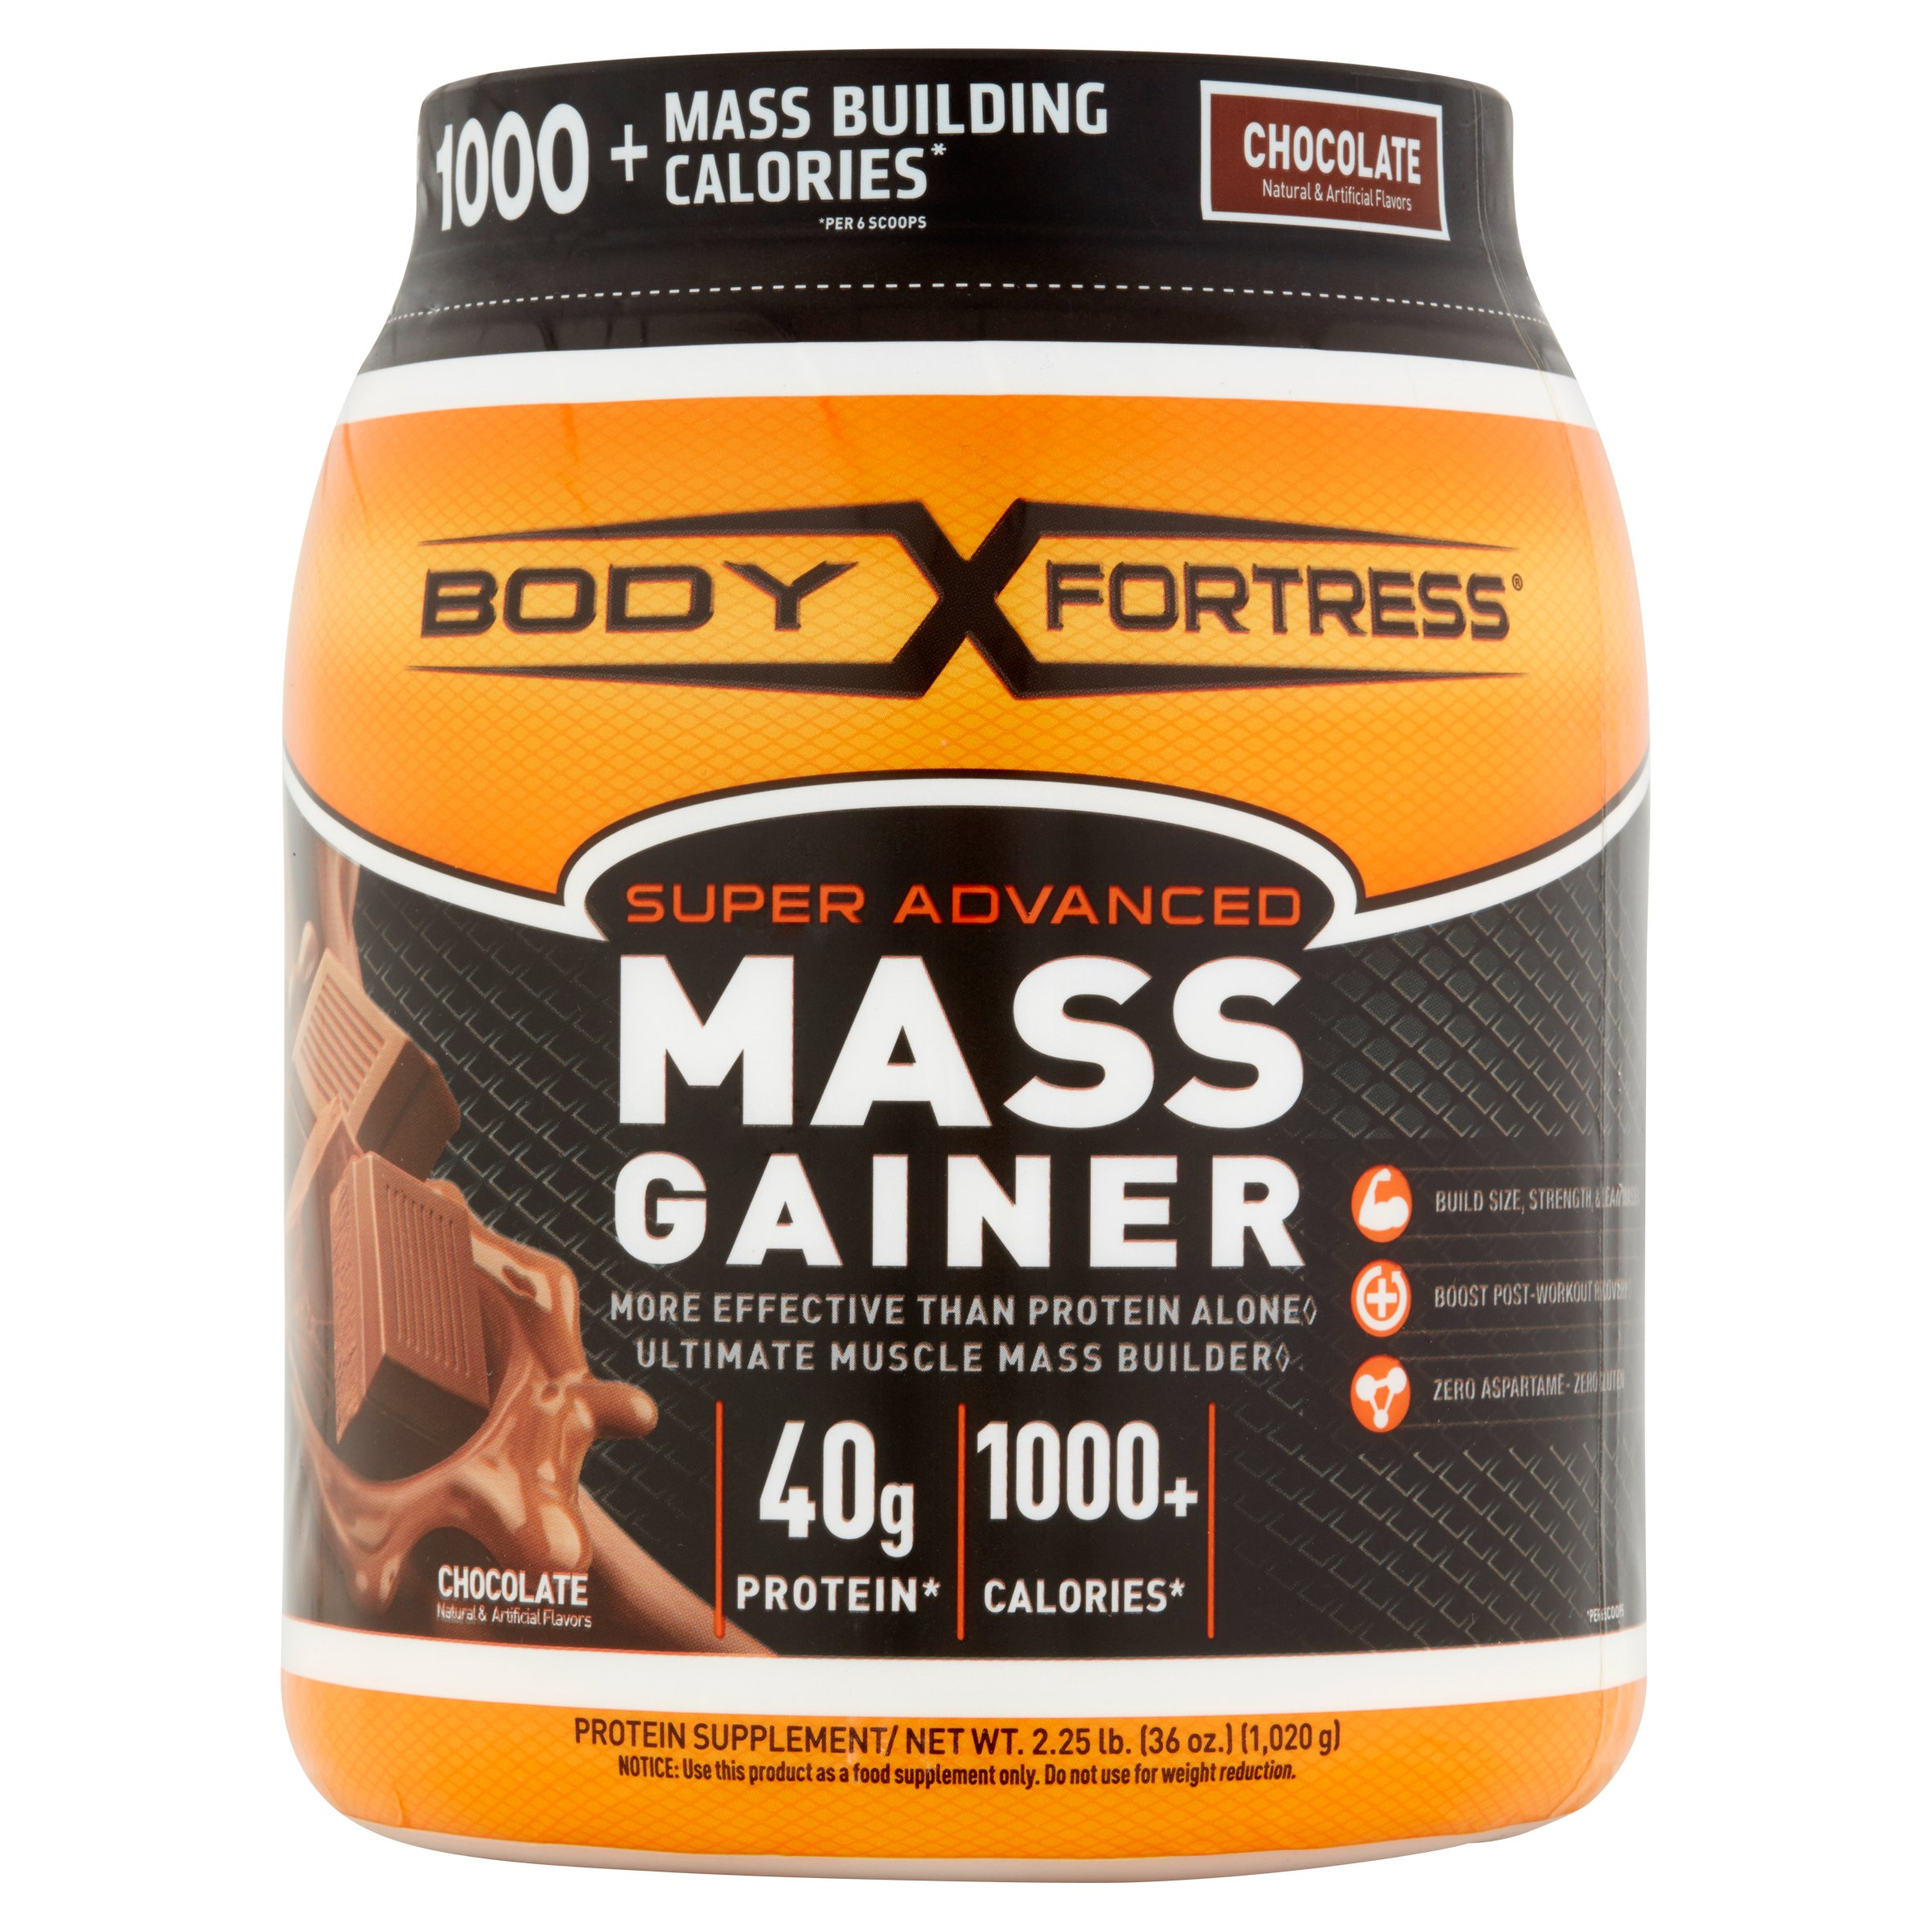 Body Fortress Super Advanced Mass Gainer Protein Powder, Chocolate, 40g Protein, 2.25 Lb